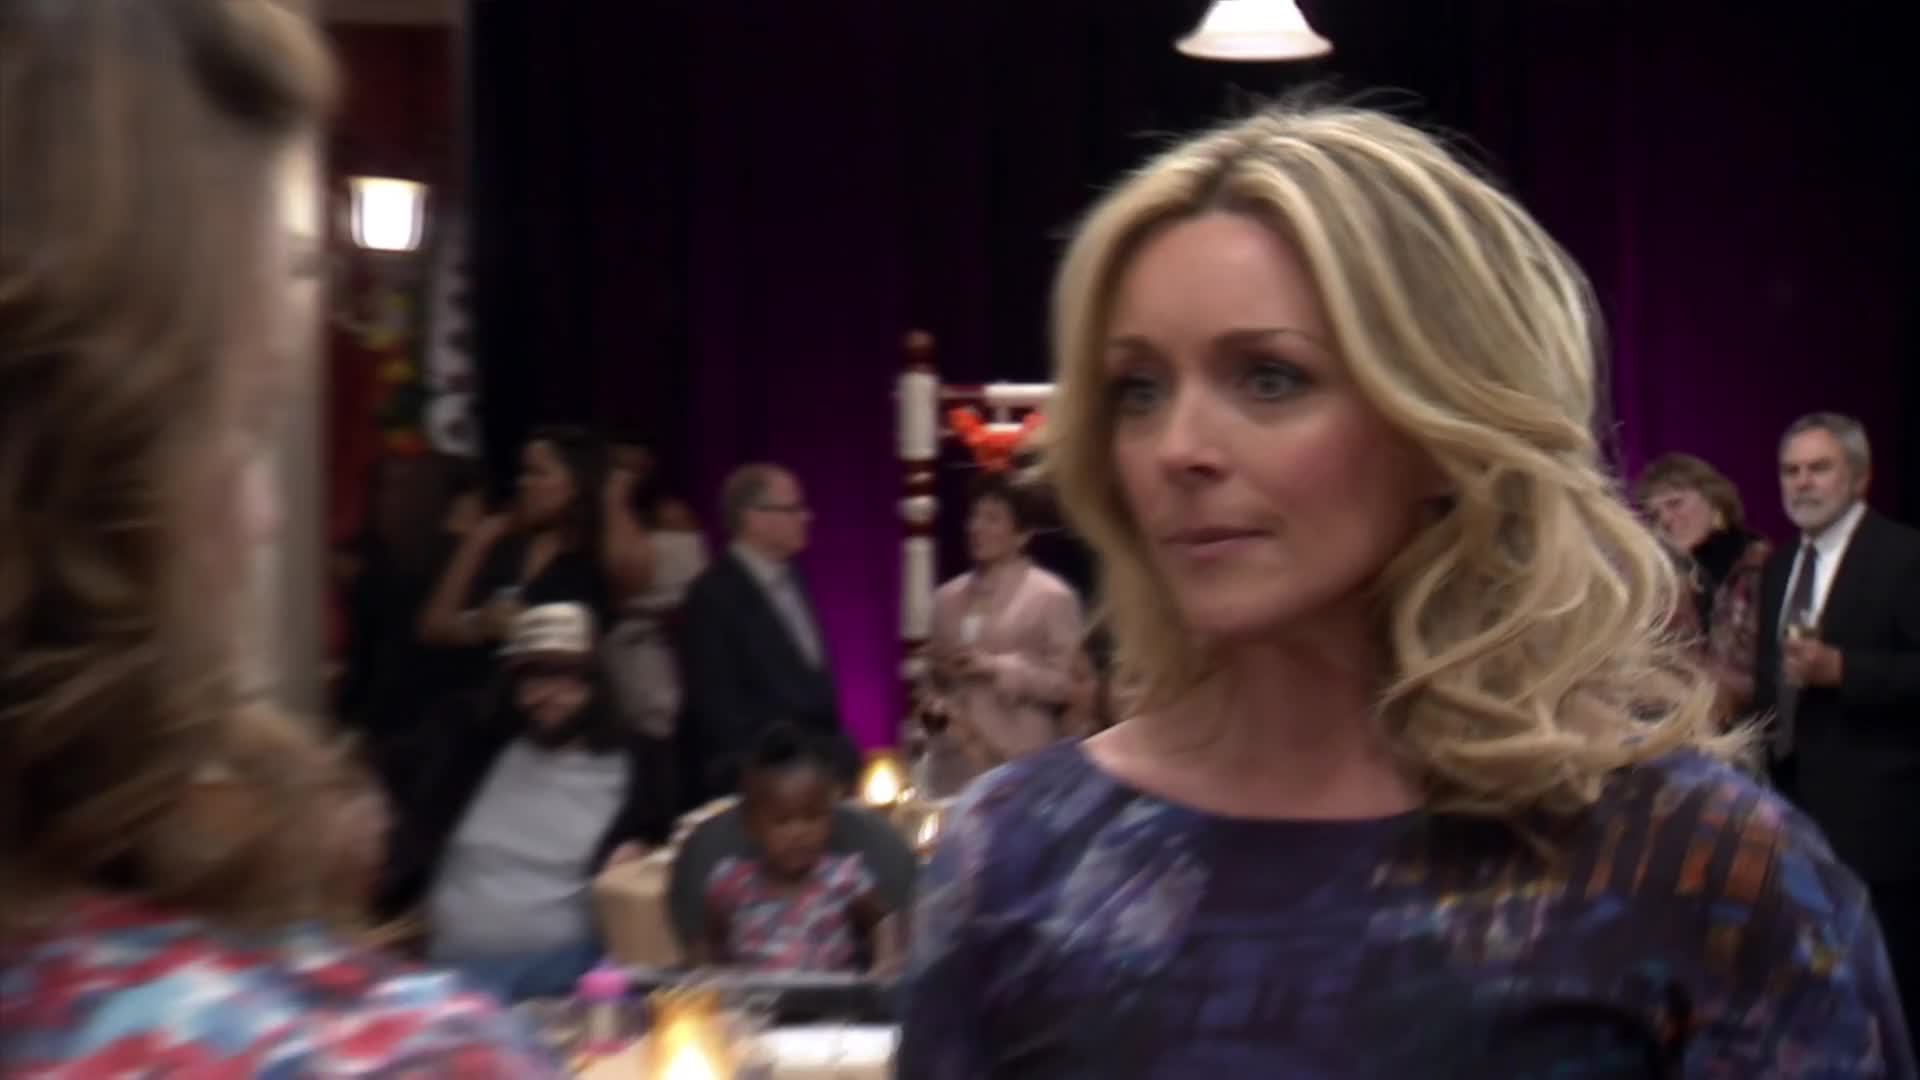 30 ROCK, Jane, Jenna, Jordan, Krakowski, Maroney, Queen, S06E20, camera, jane krakowski, look, looking, of, stare, tina fey, Jenna looking at cameras GIFs